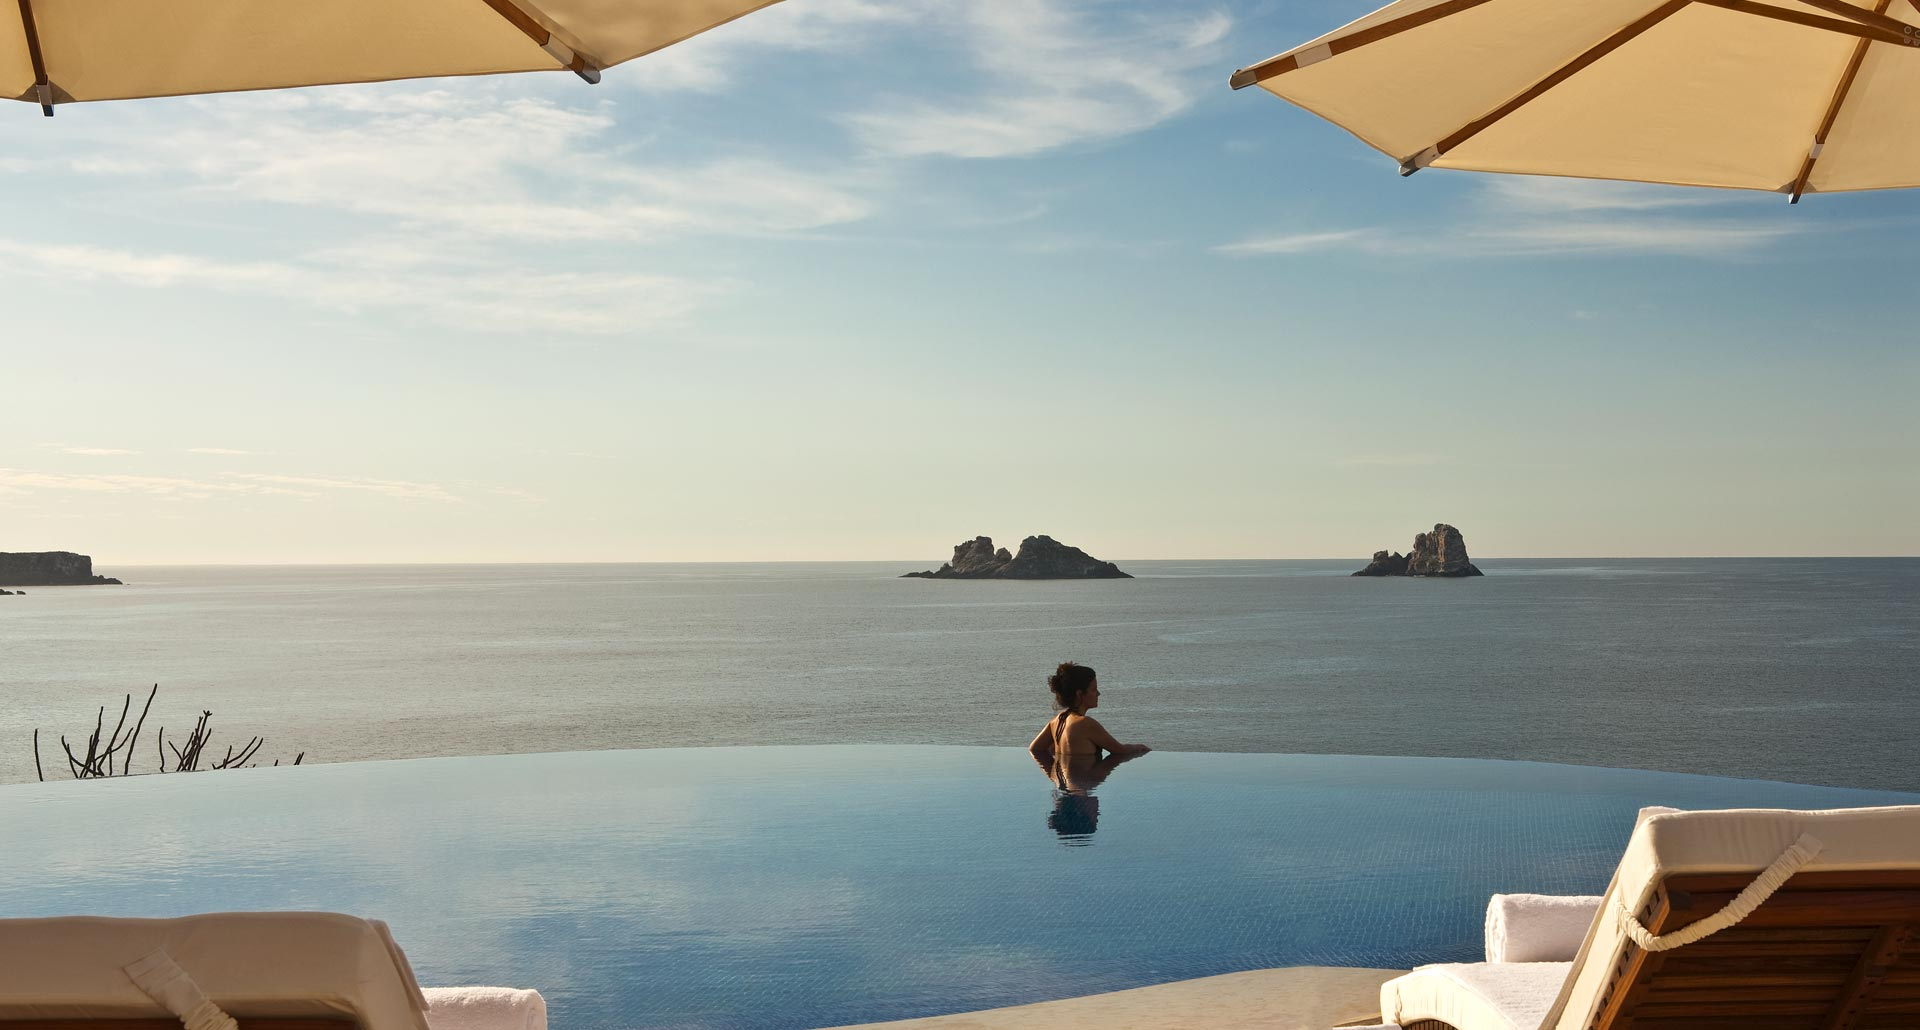 Capella Ixtapa - boutique hotel in Zihautanejo, Mexico